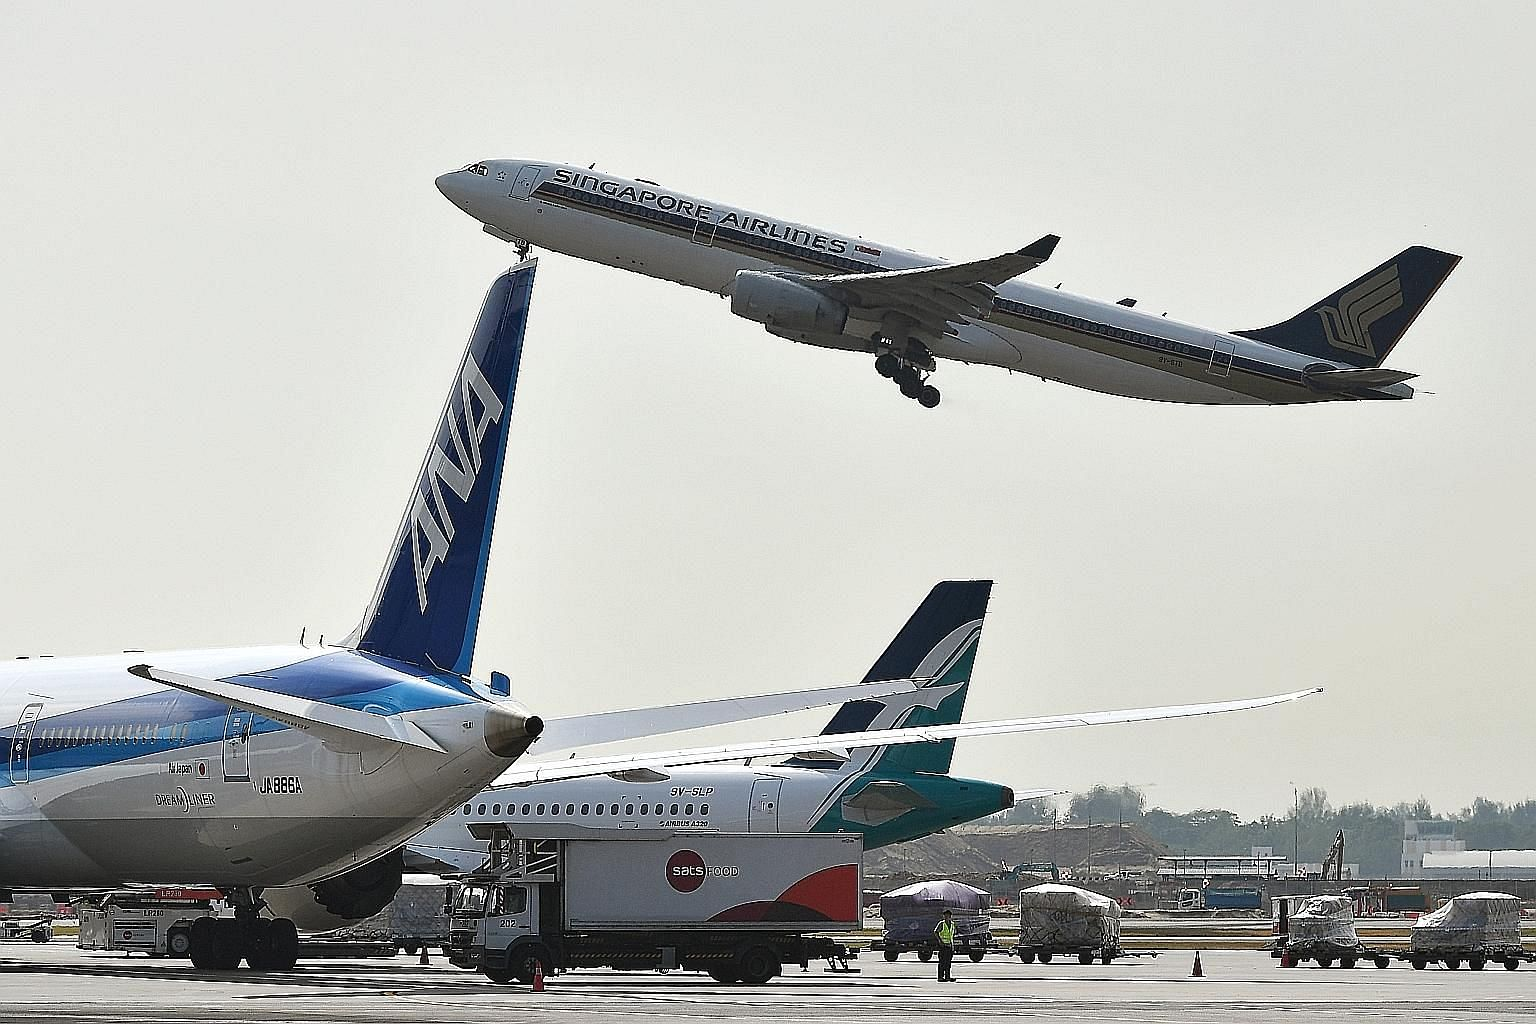 Airlines in the Asia-Pacific can expect strong demand for their services to continue in all the major markets in the region, as well as on long-haul services to Europe and the United States. To prepare for this and to stay on top, carriers such as Si